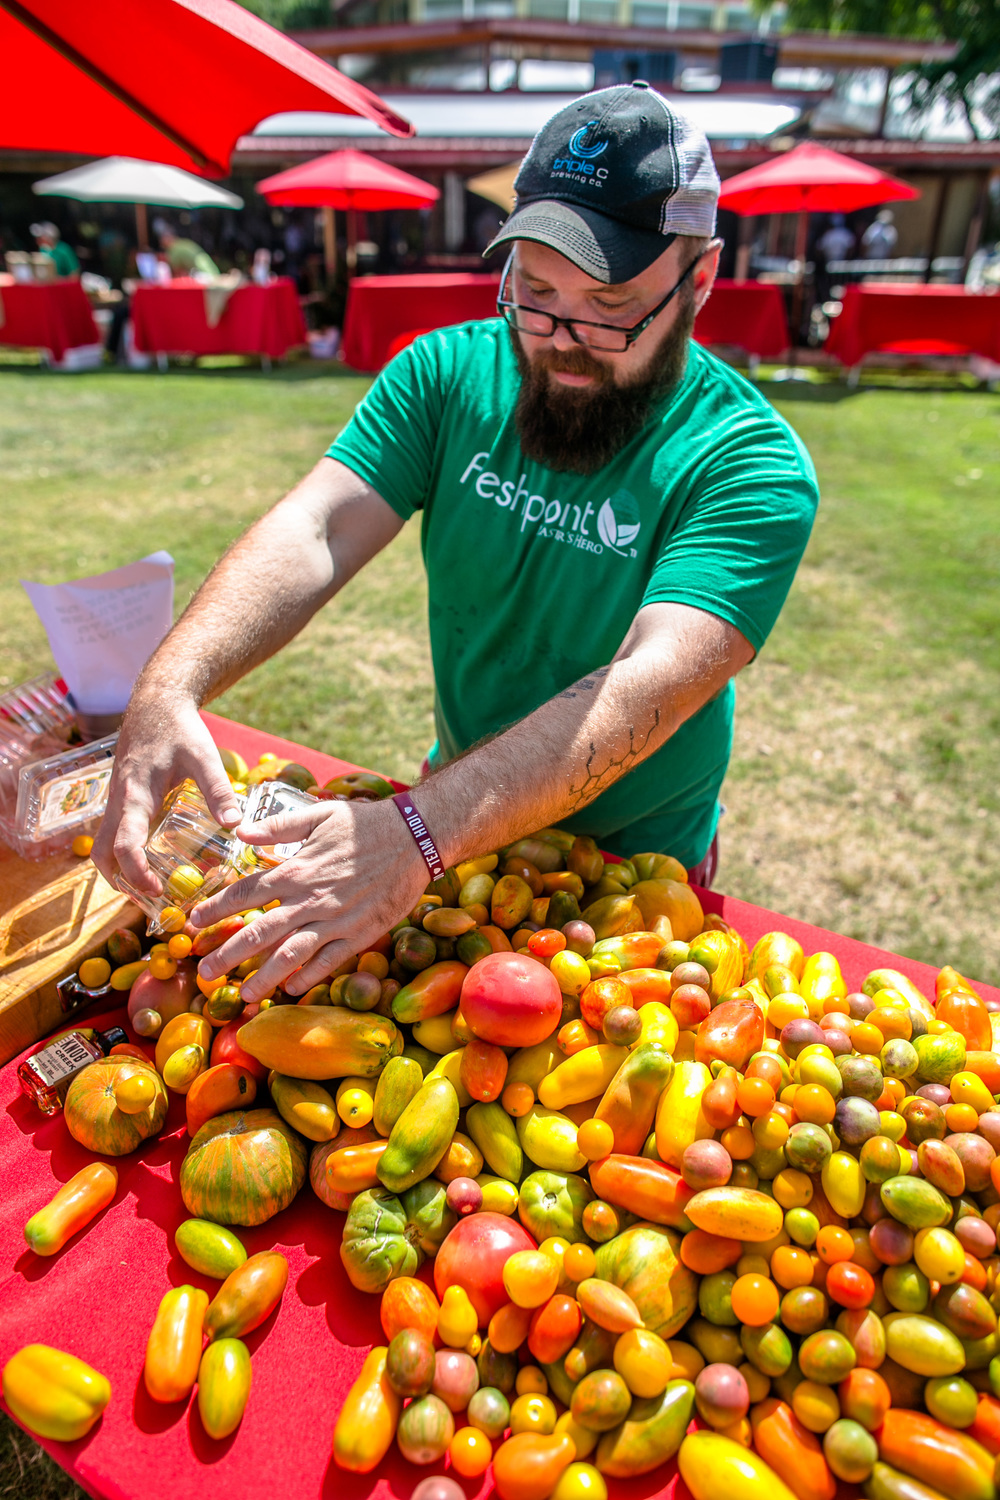 JCT-Attack-of-the-Killer-Tomato-Festival-2016-Erik-Meadows-Photography-26.jpg